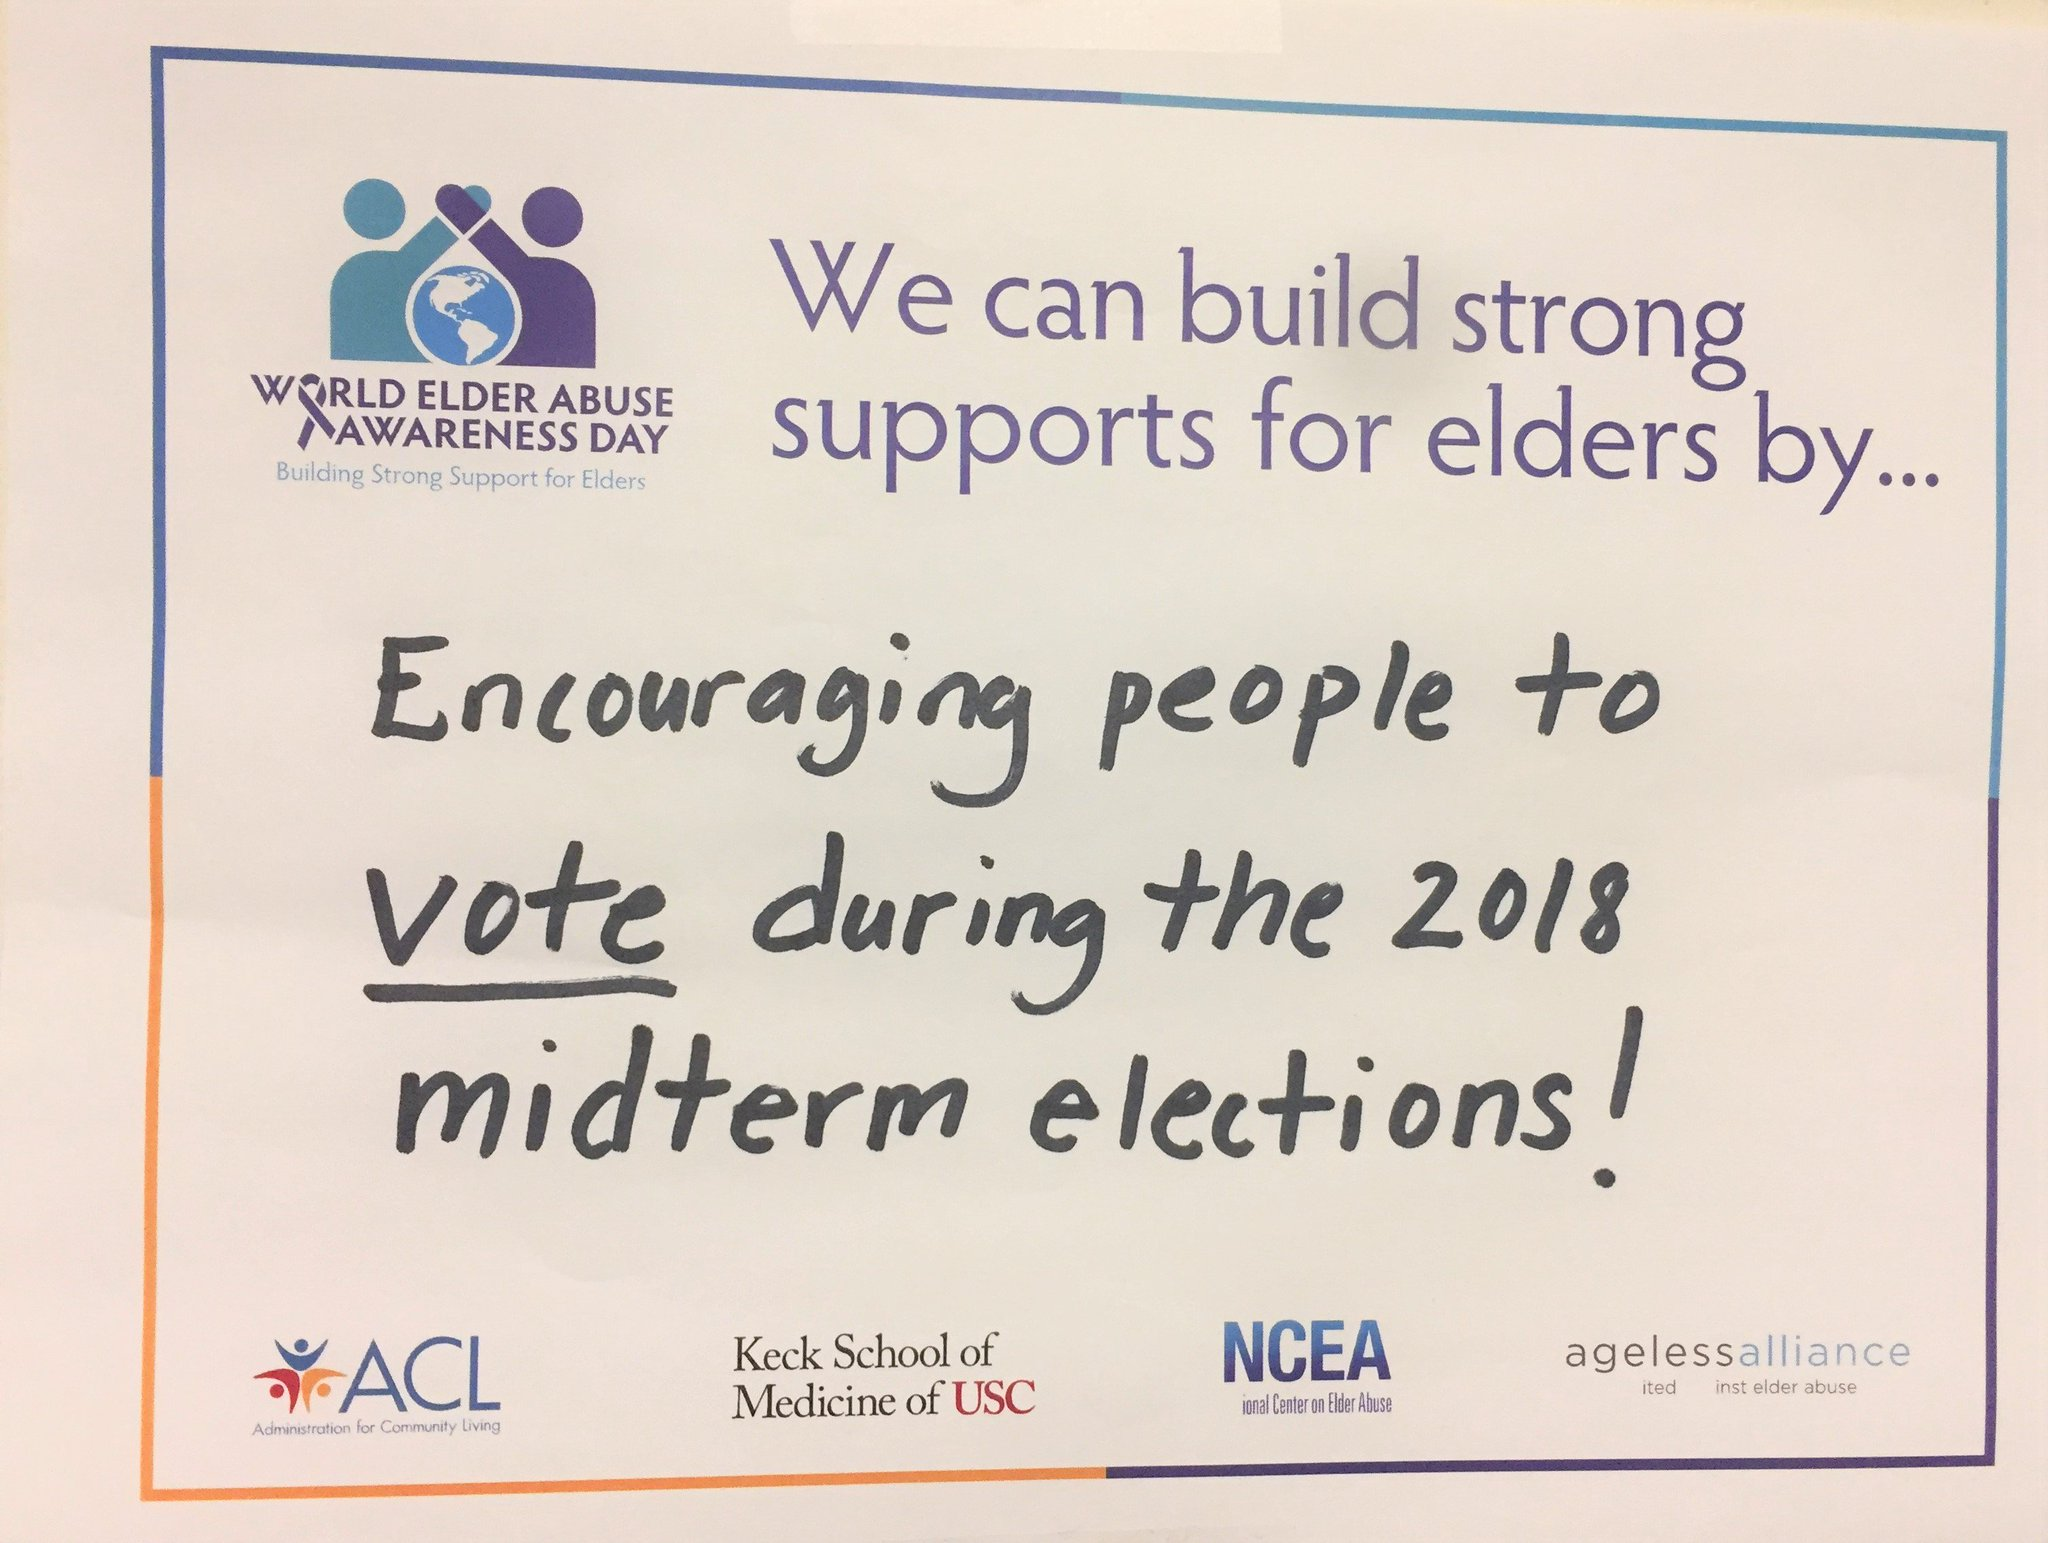 We can build strong supports for elders by... #endelderabuse #WEAAD @NCEAatUSC @ACLgov @AgelessAlliance https://t.co/QeKDcheYA1